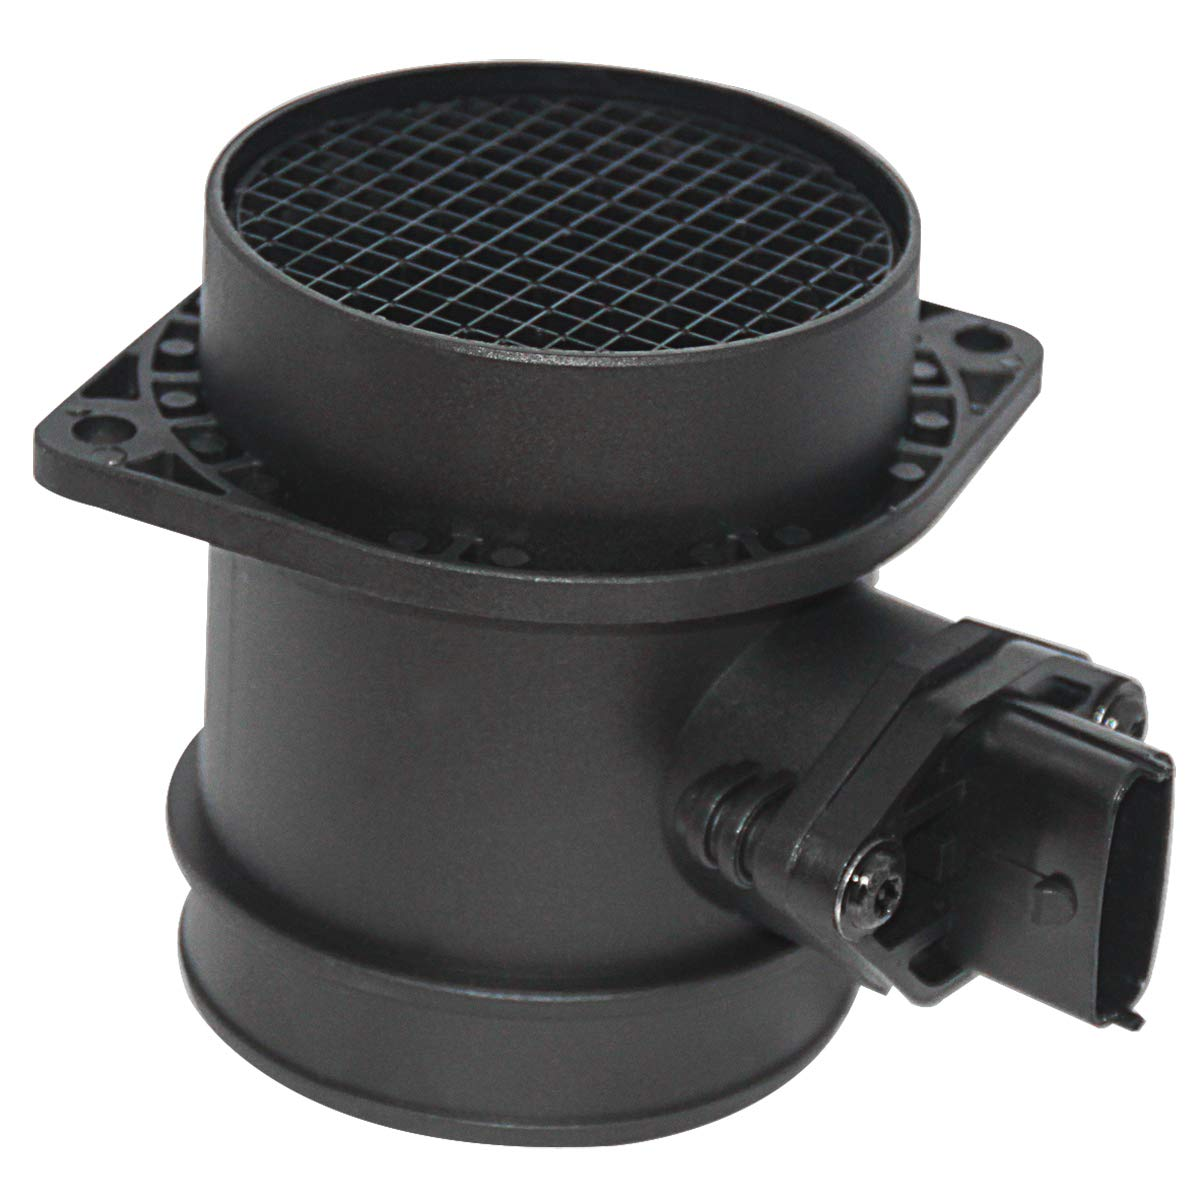 Mass Air Flow Meter Sensor MAF Compatible for Volvo C70 S40 S60 S80 V50 V70 XC70 XC90 fit 0280218088 Partschoice